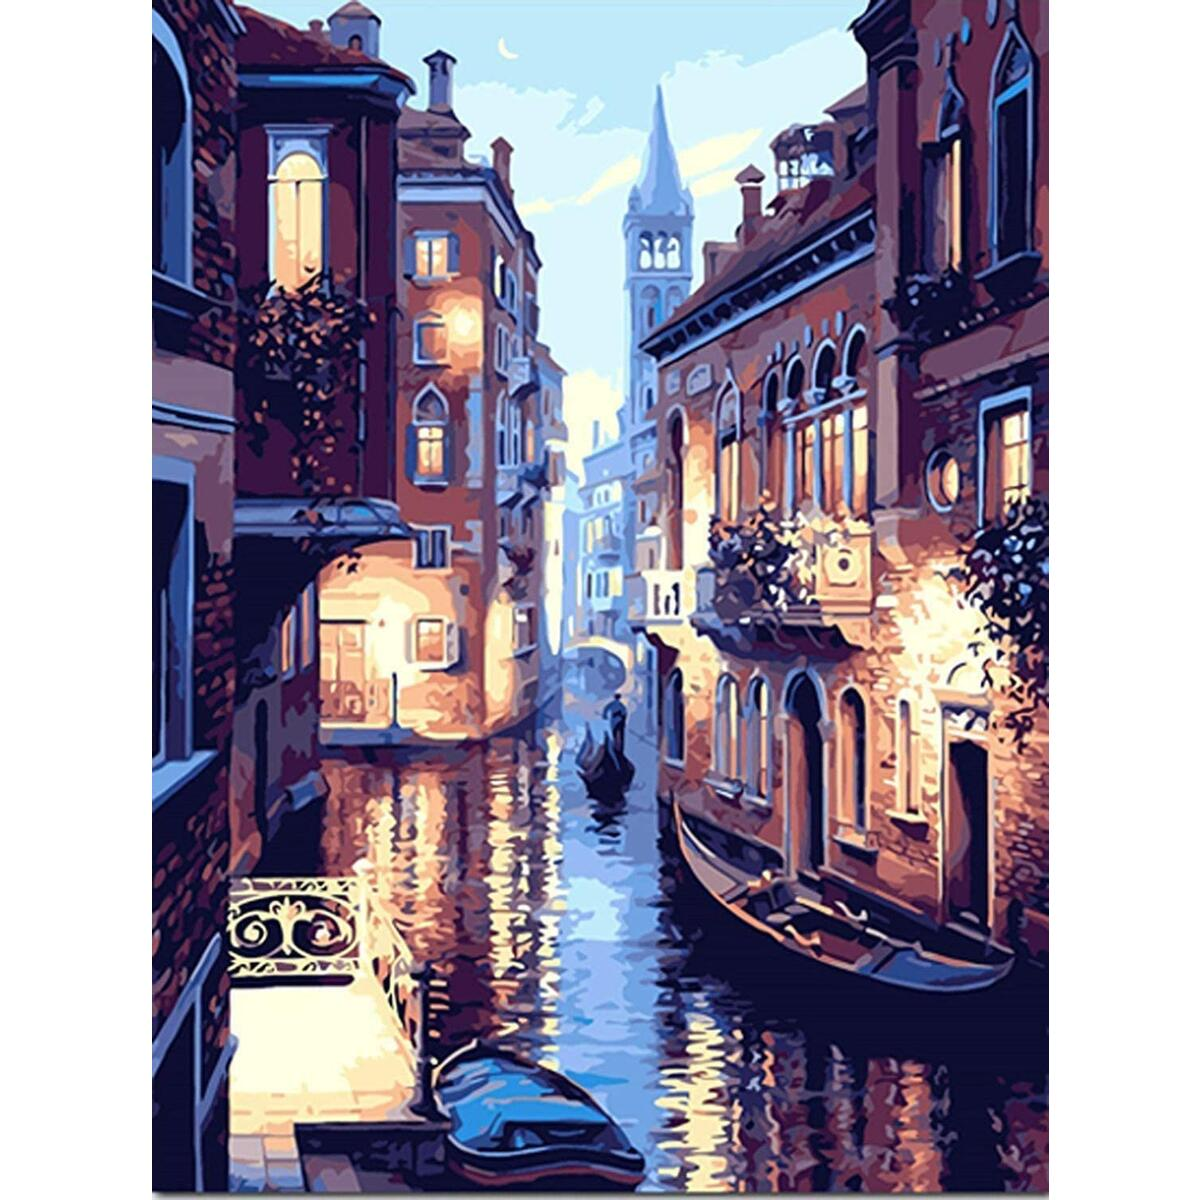 DIY Paint by Numbers for Adults and Kids Framed Kit (16 x 20 Inch) Beautiful Venice Italy Night Scene, Canvas Acrylic Painting Kit - Includes 3 Paint Brushes, Durable Frame, and 25 Acrylic Paints